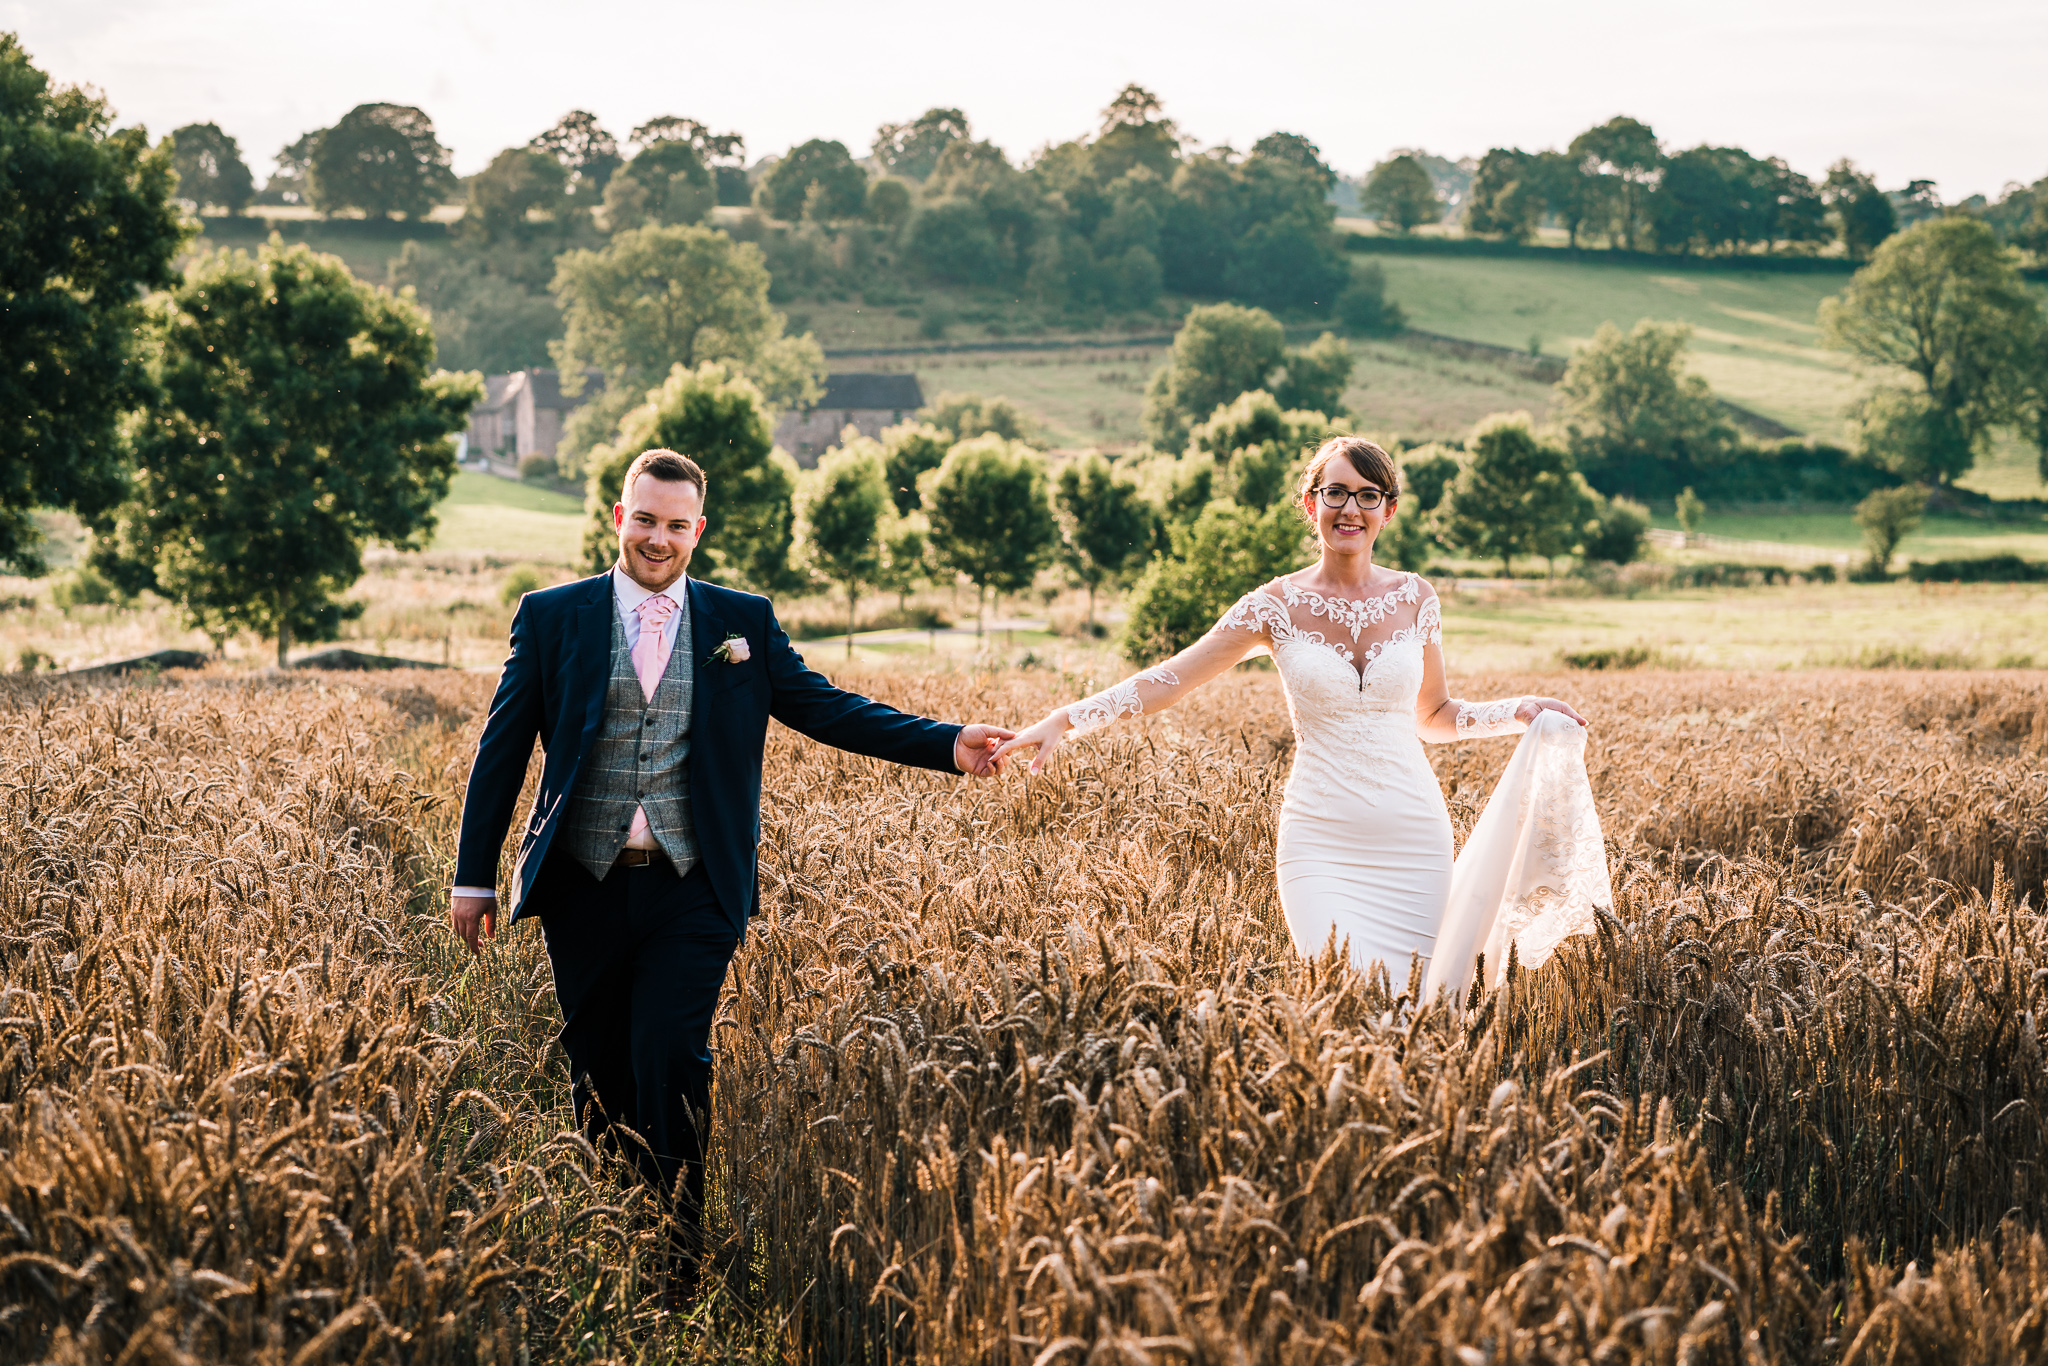 THE ASHES BARNS WEDDING PHOTOGRAPHY LEEK STAFFORDSHIRE